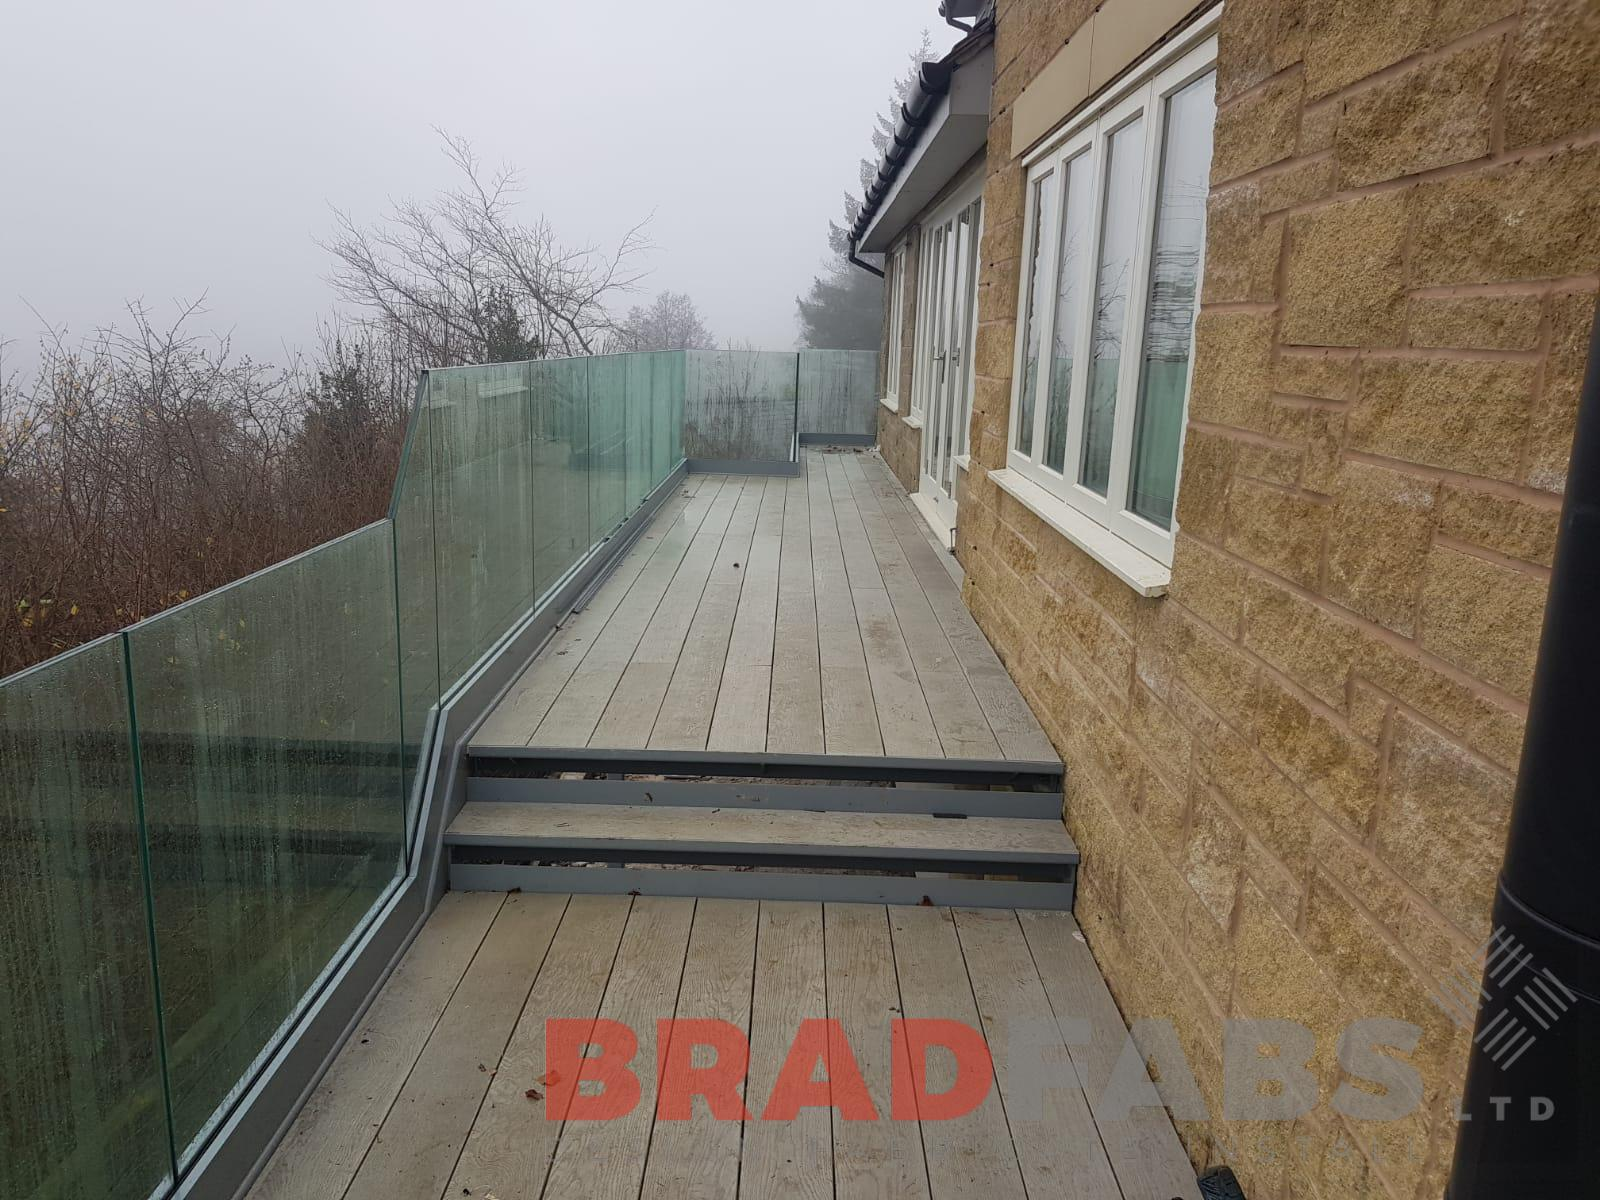 millboard decking floor on balcony